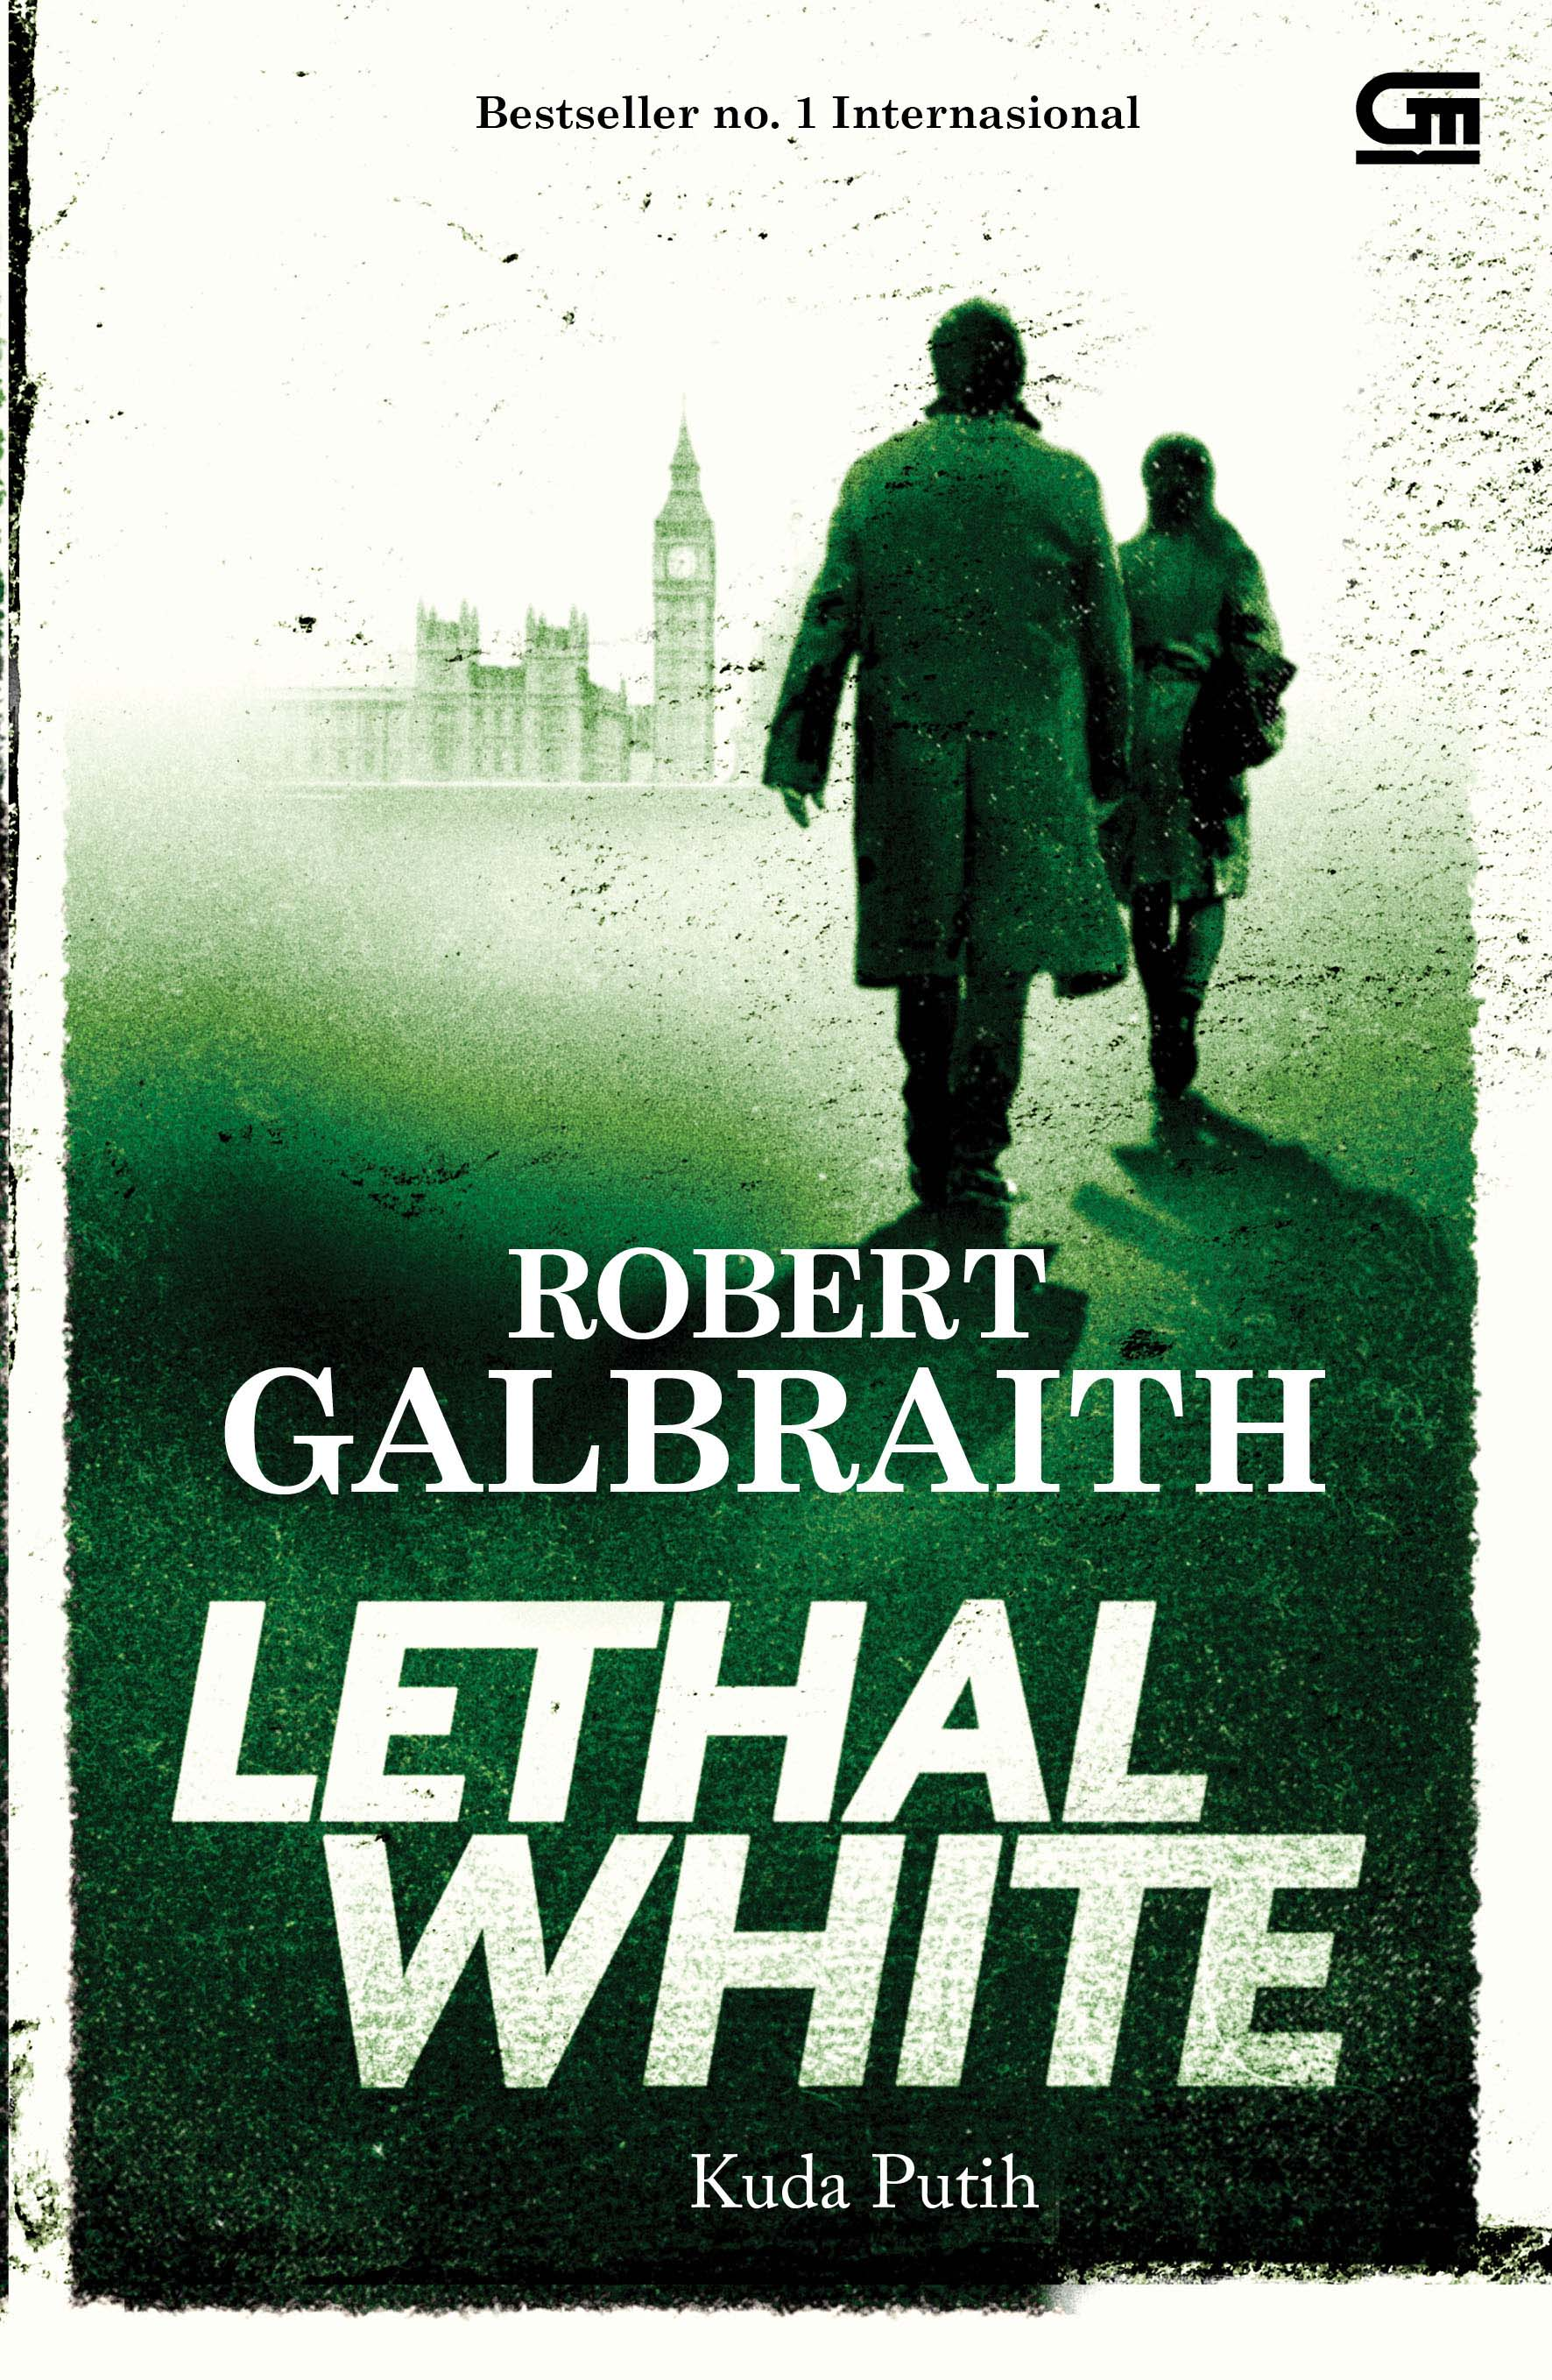 Cormoran Strike #4: Kuda Putih (The Lethal White)